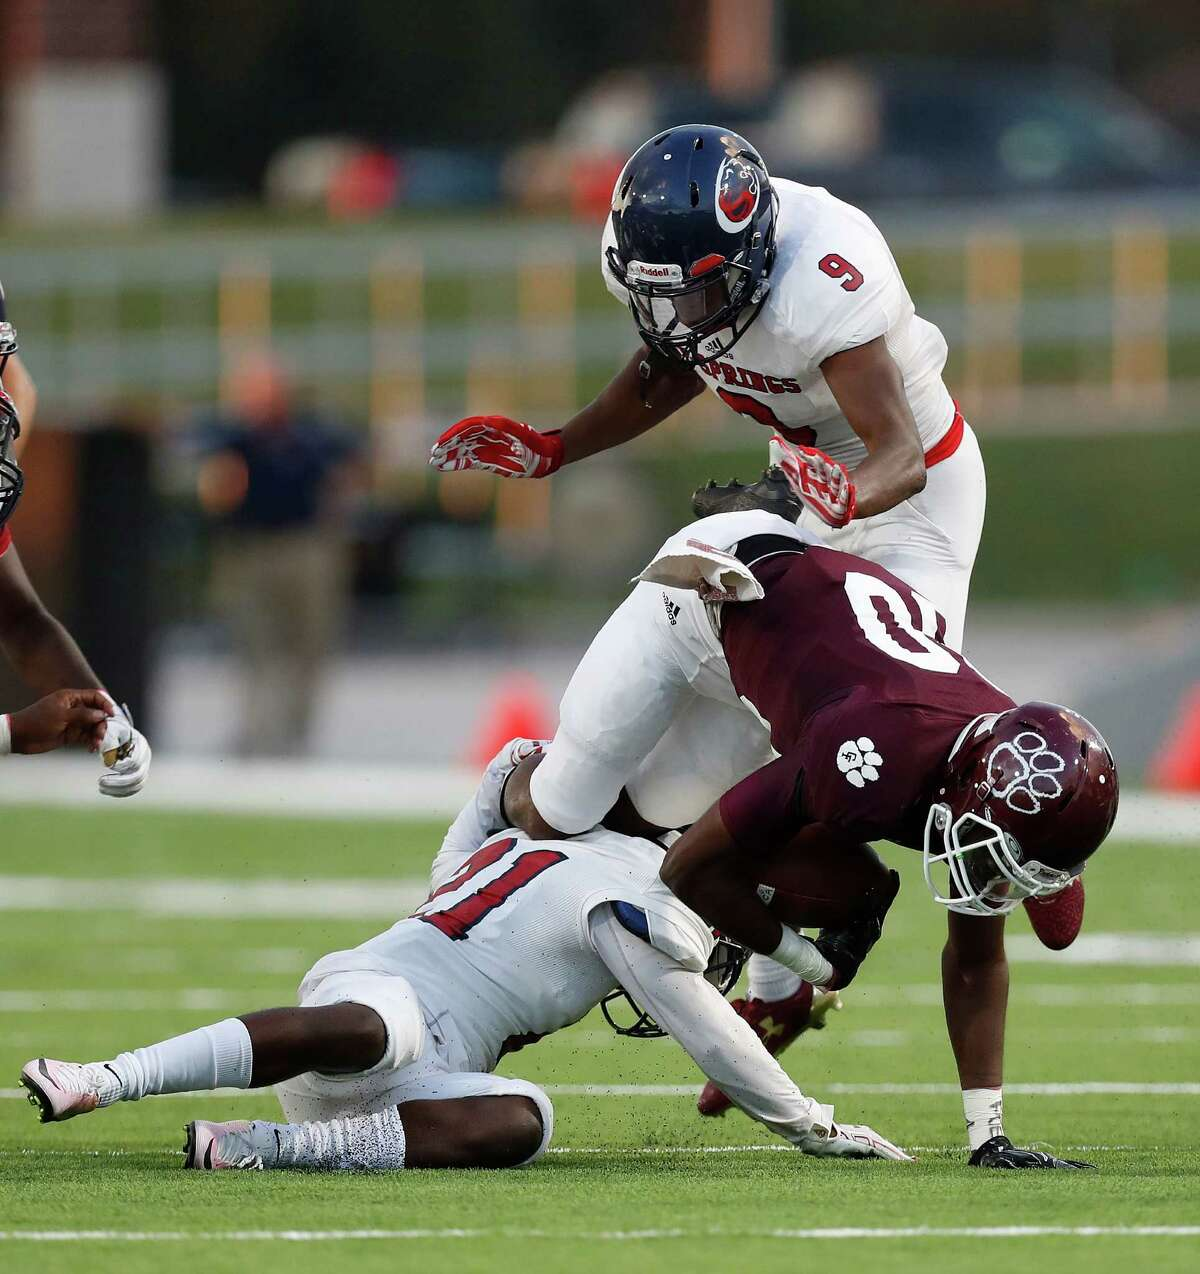 Cy-Fair's B.J. Chambers (80) dives over Cypress Spring's Brandon Wilson (21) during the first half of the Cy Springs vs. Cy-Fair high school football game at Pridgeon Stadium, Thursday, Sept. 15, 2016 in Houston.